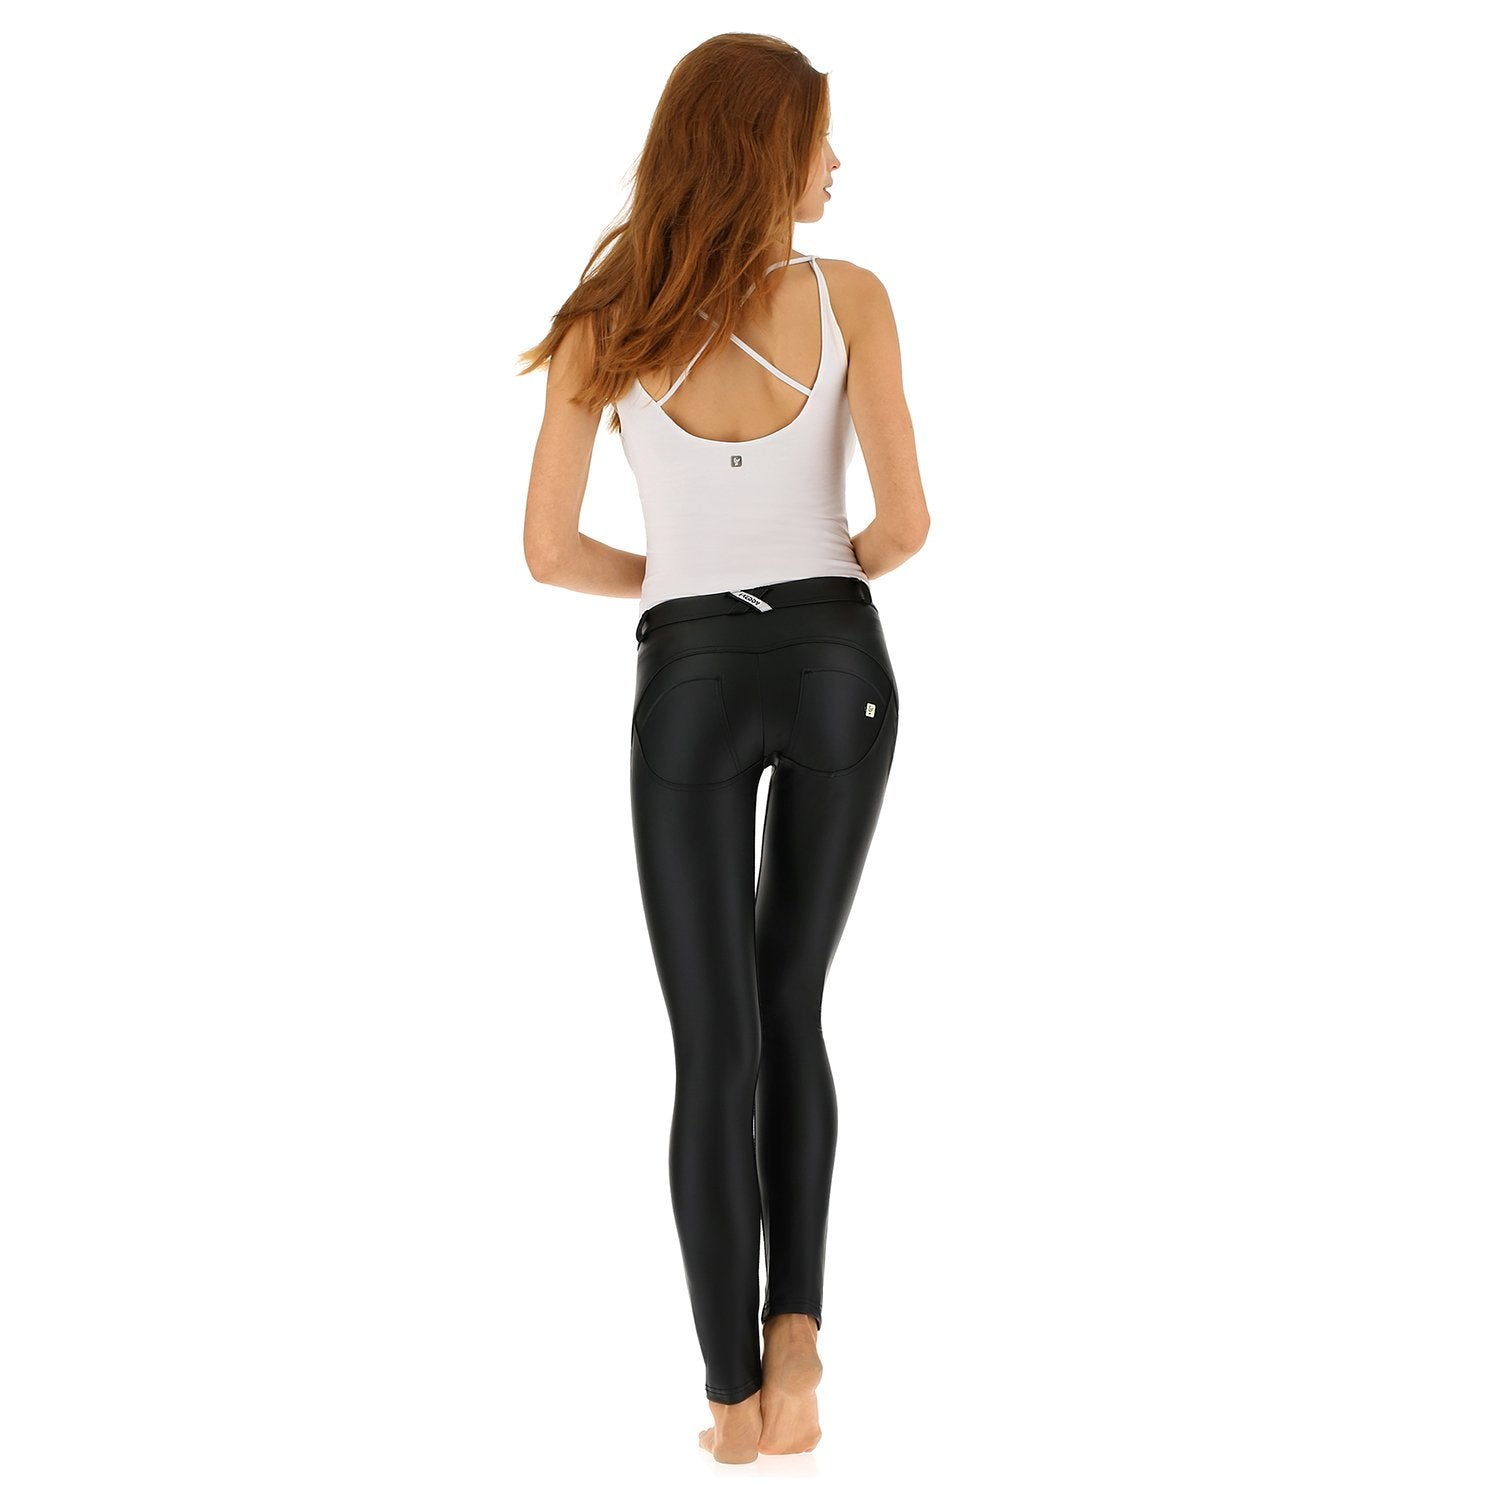 e5f93c97ef8d6a Freddy WR.UP® Eco Leather Effect Skinny Pushup Pants, Shaping ...